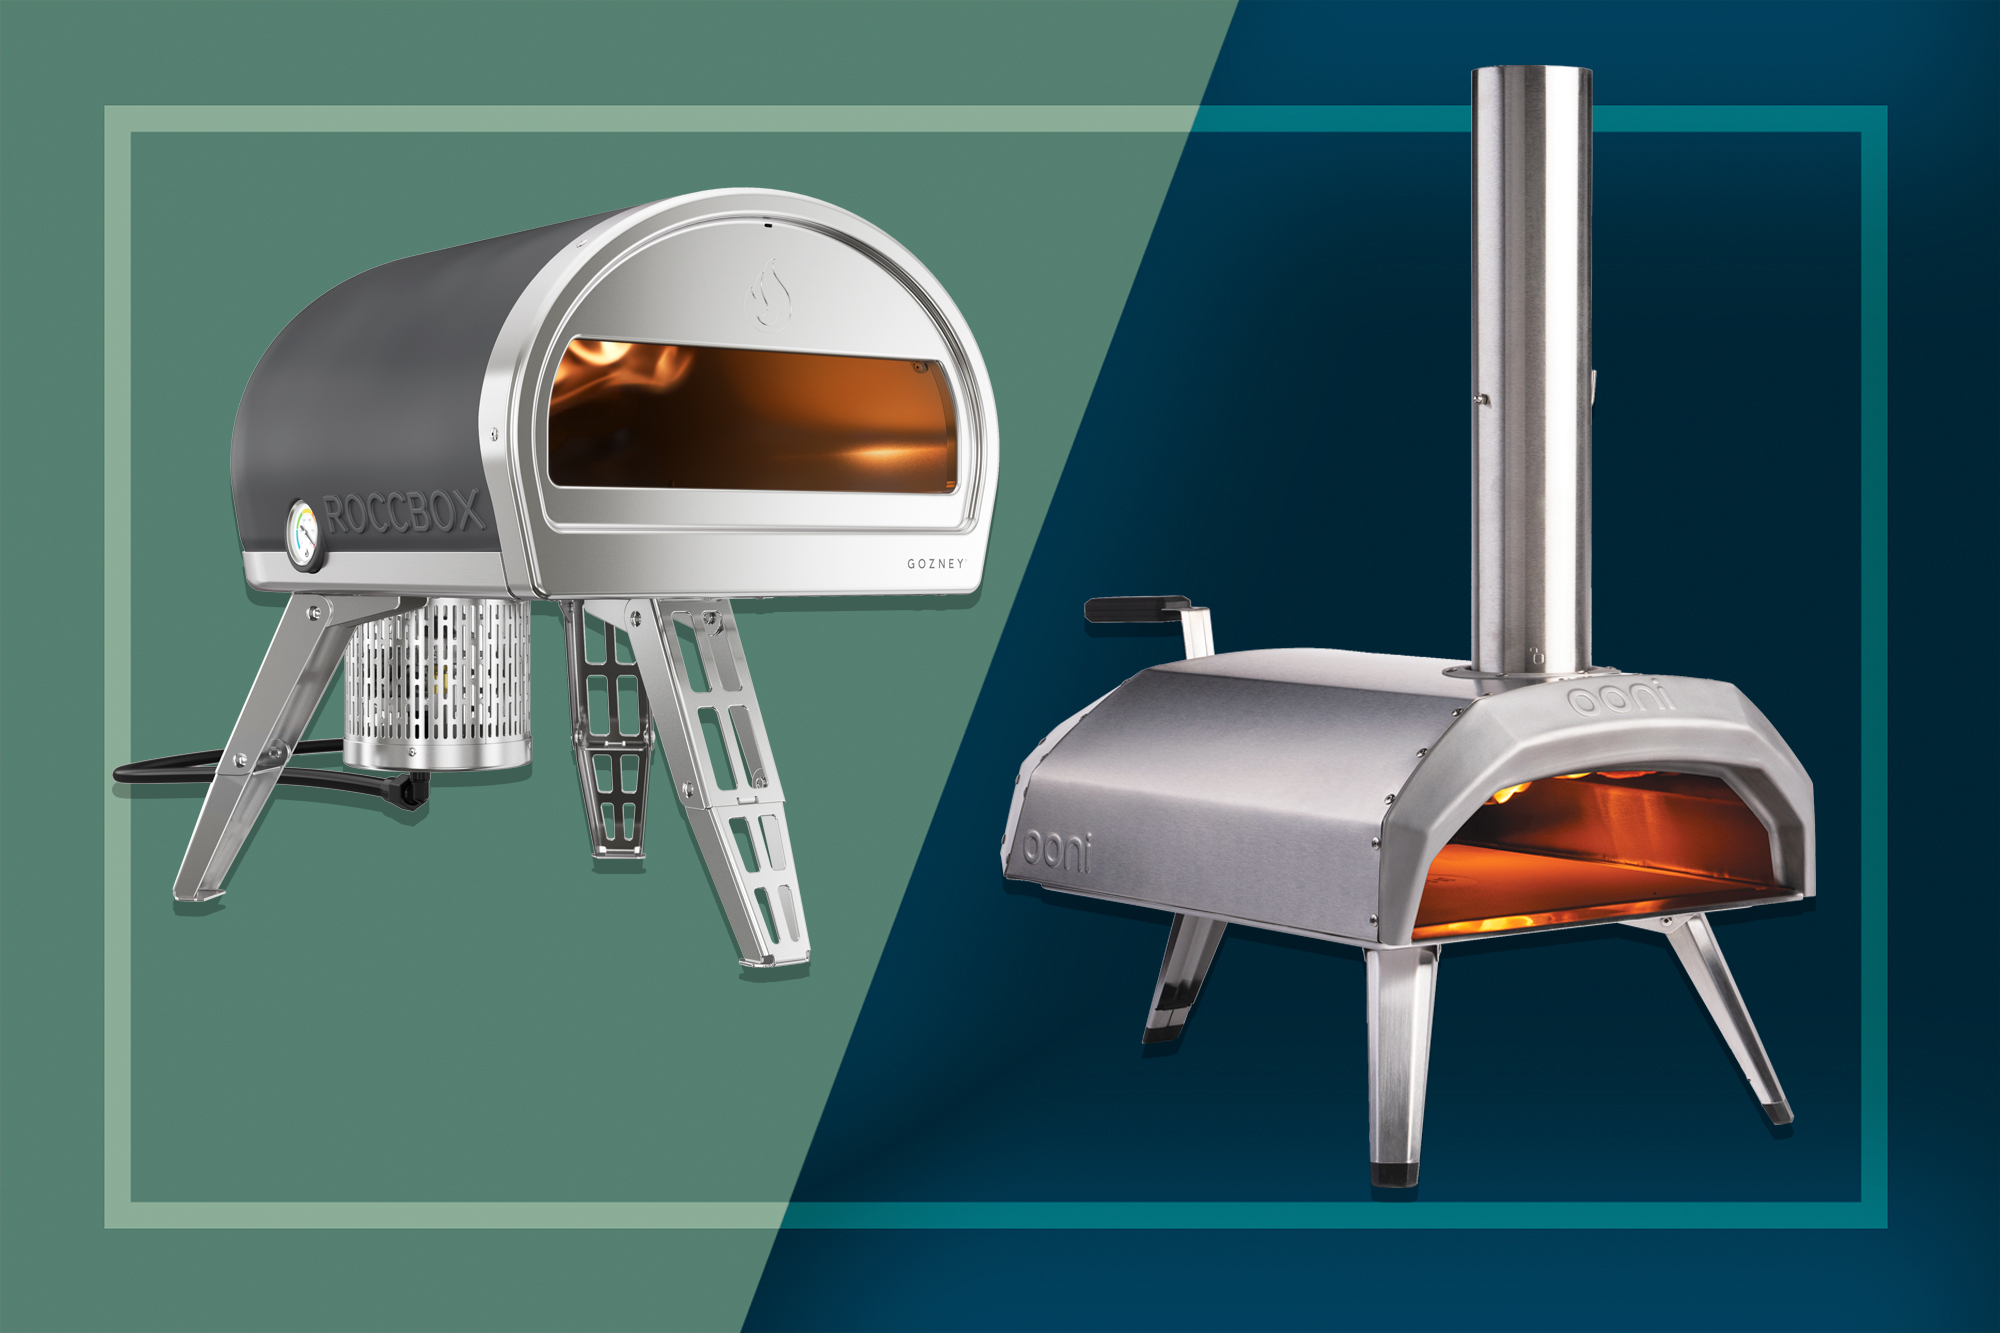 Gozney and Ooni Pizza Ovens